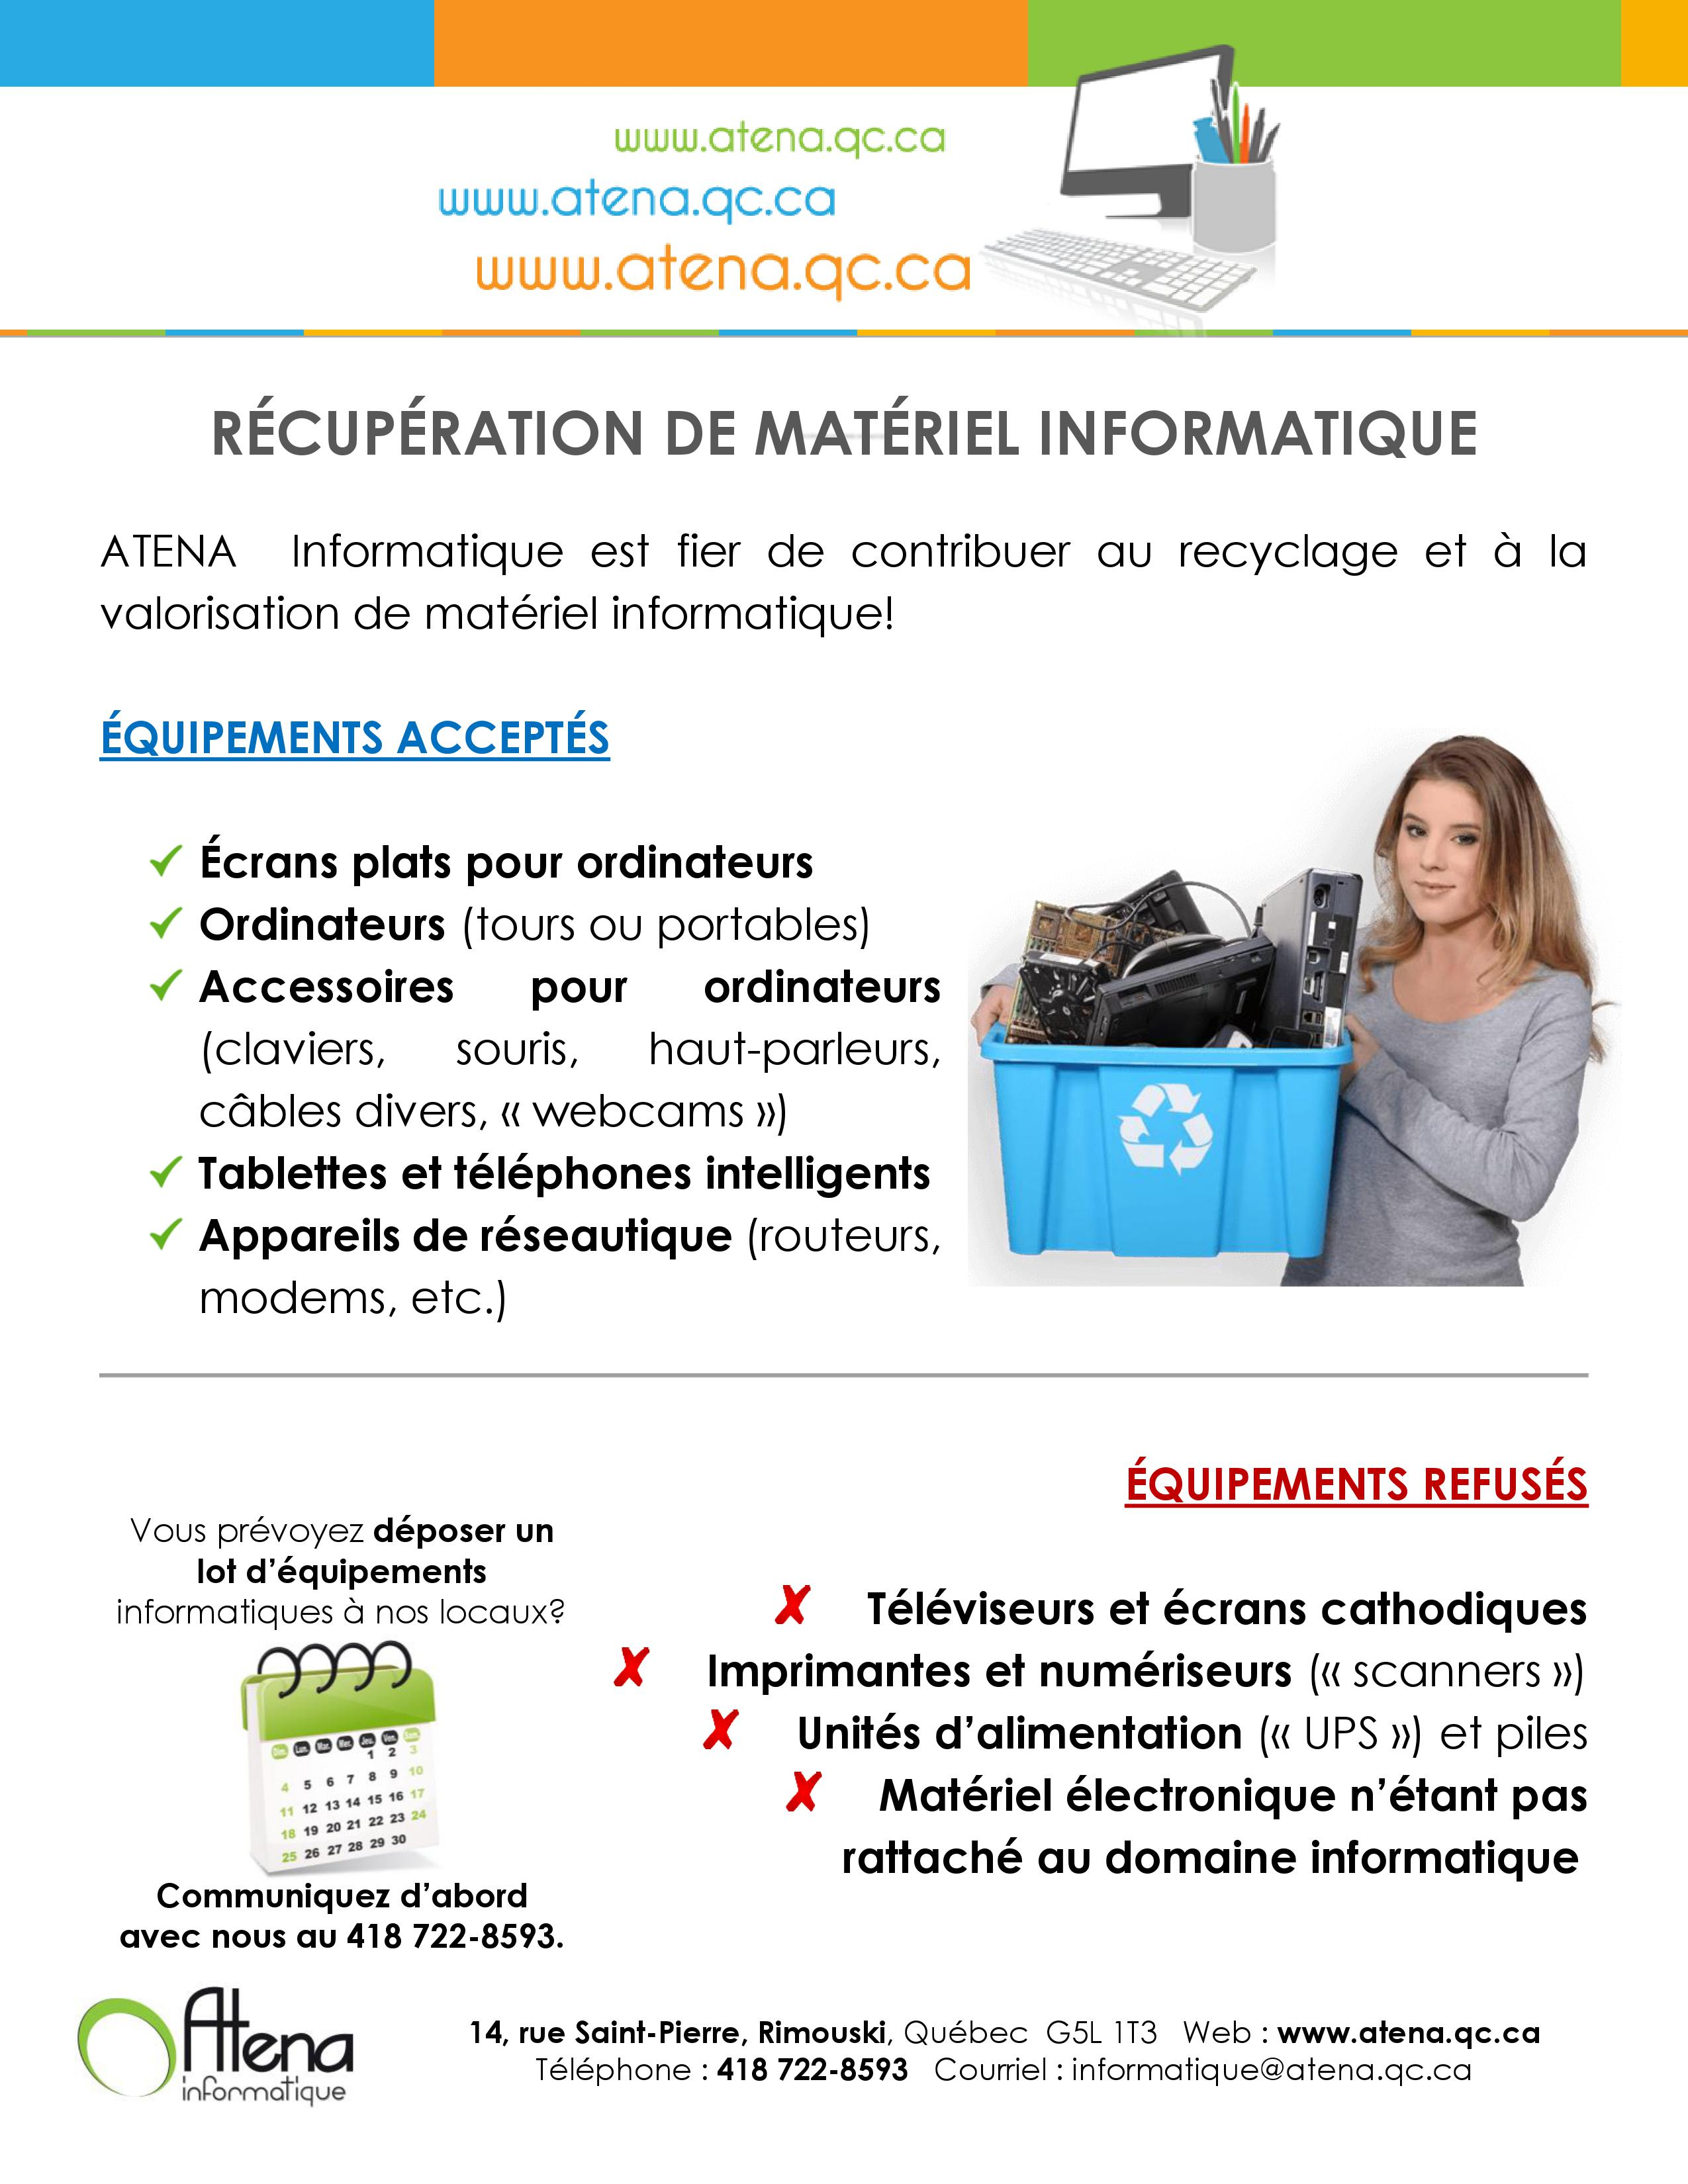 AFFICHE-RECYCLAGE-ATENA012019